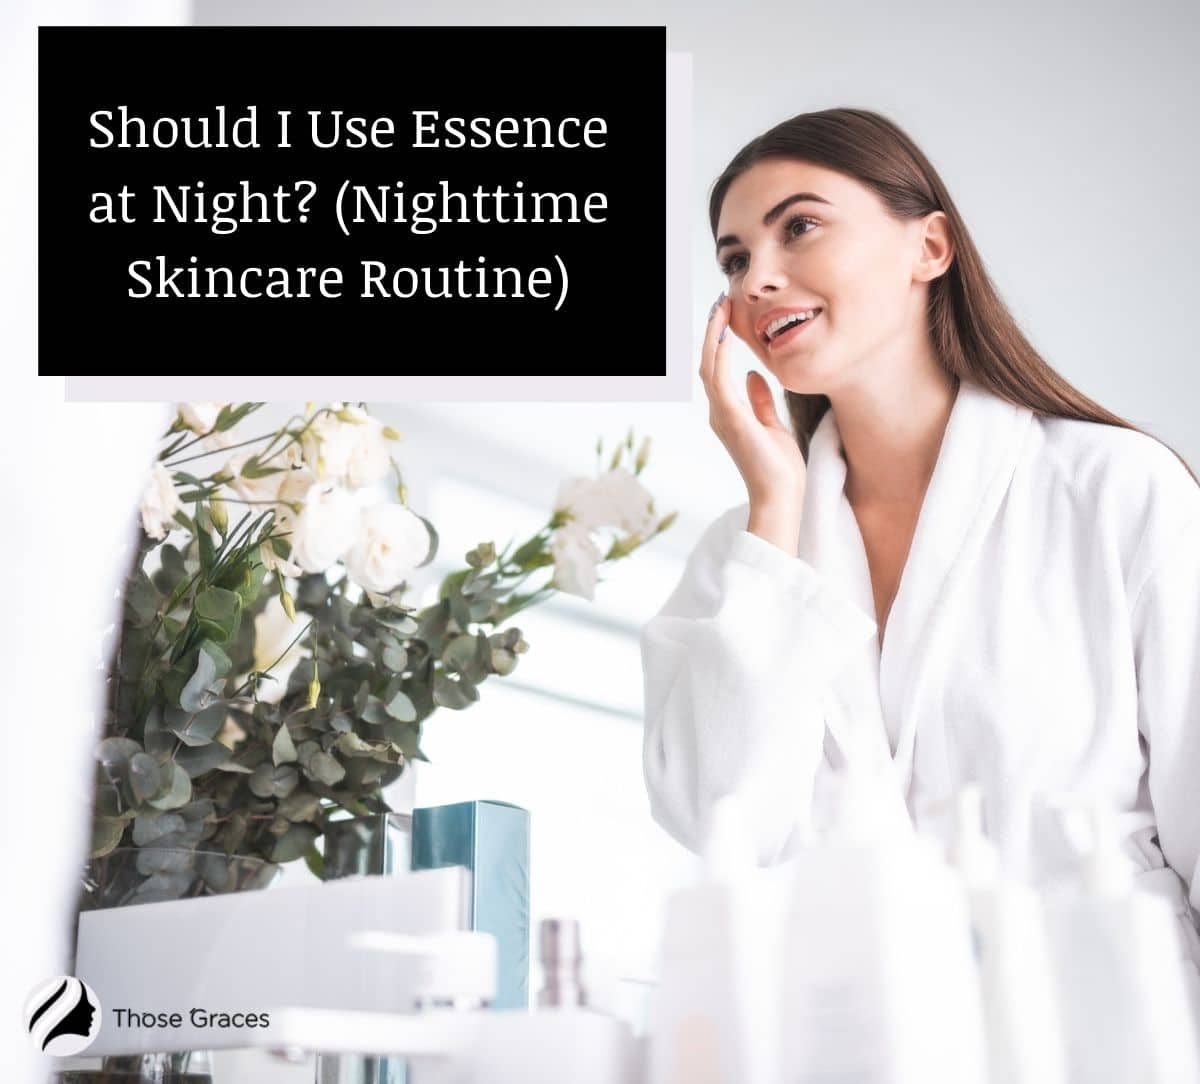 lady in robe doing her nighttime skincare routine and was about to use essence at night